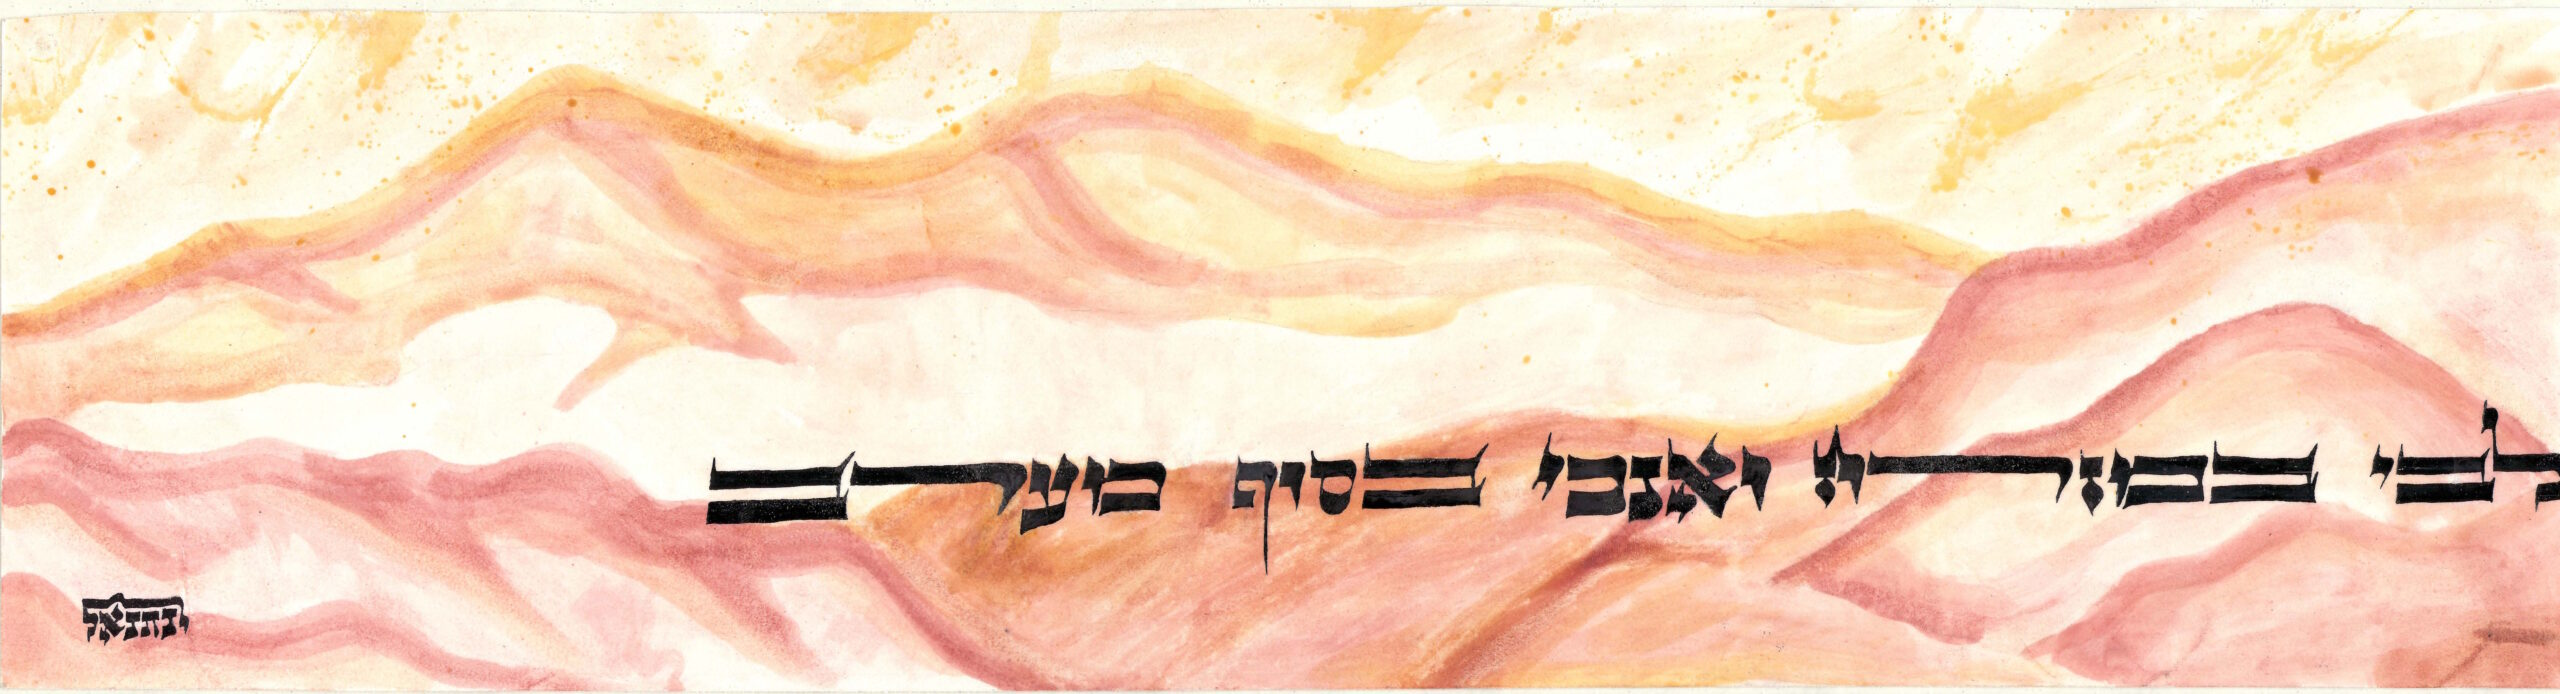 Judah Ha Levi Handwritten Judaica Scribal Art